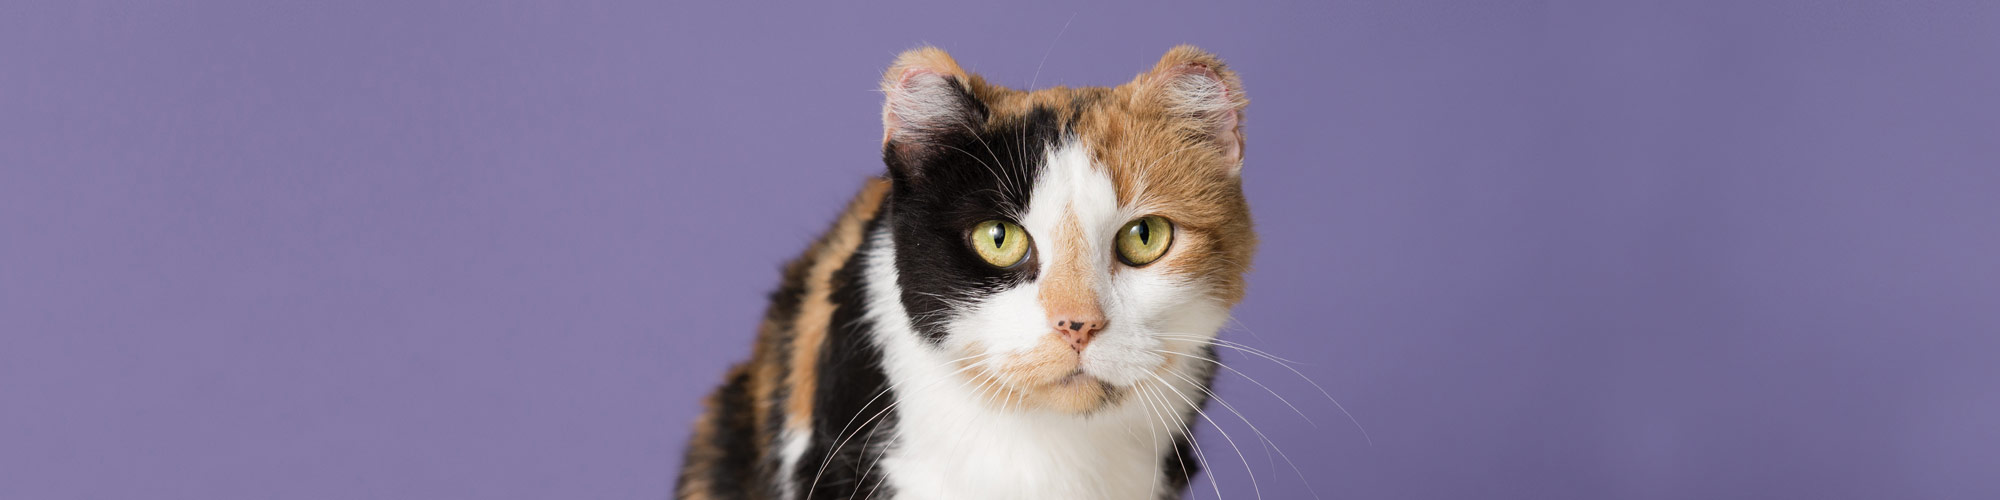 A cat with white, brown, and black markings looks forward at the camera